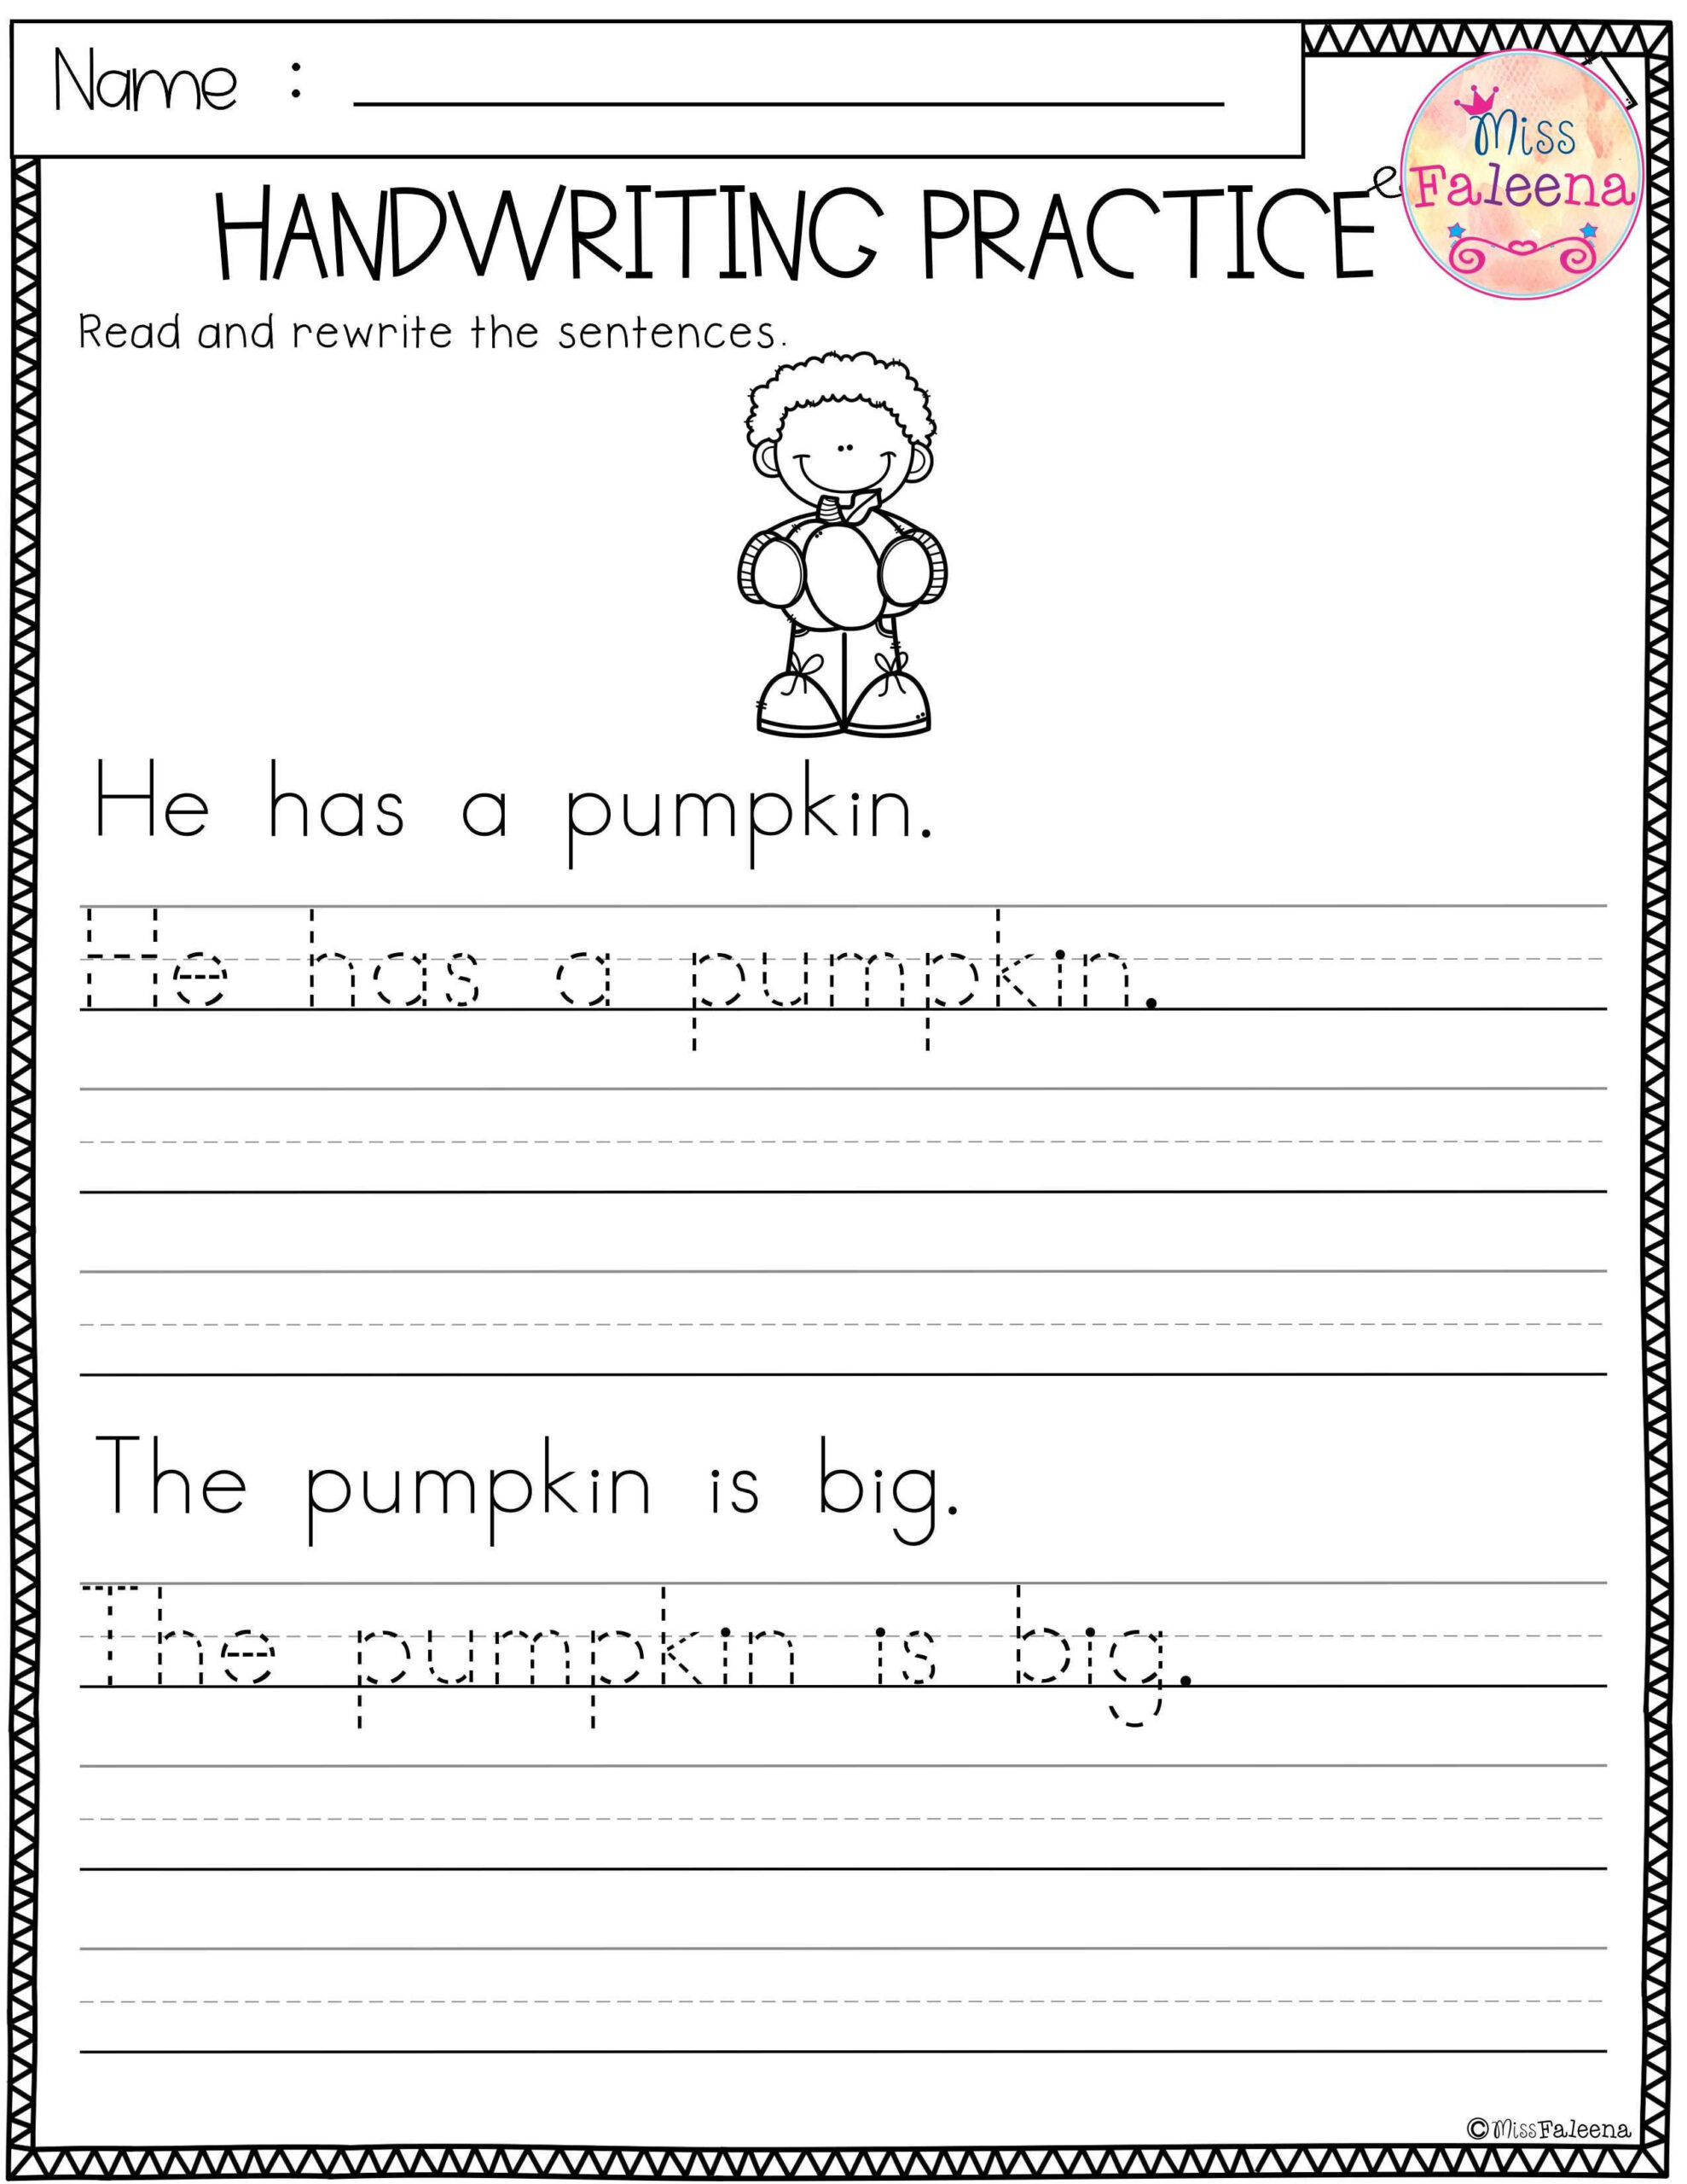 Free Handwriting Practice. This Product Has 5 Pages Of